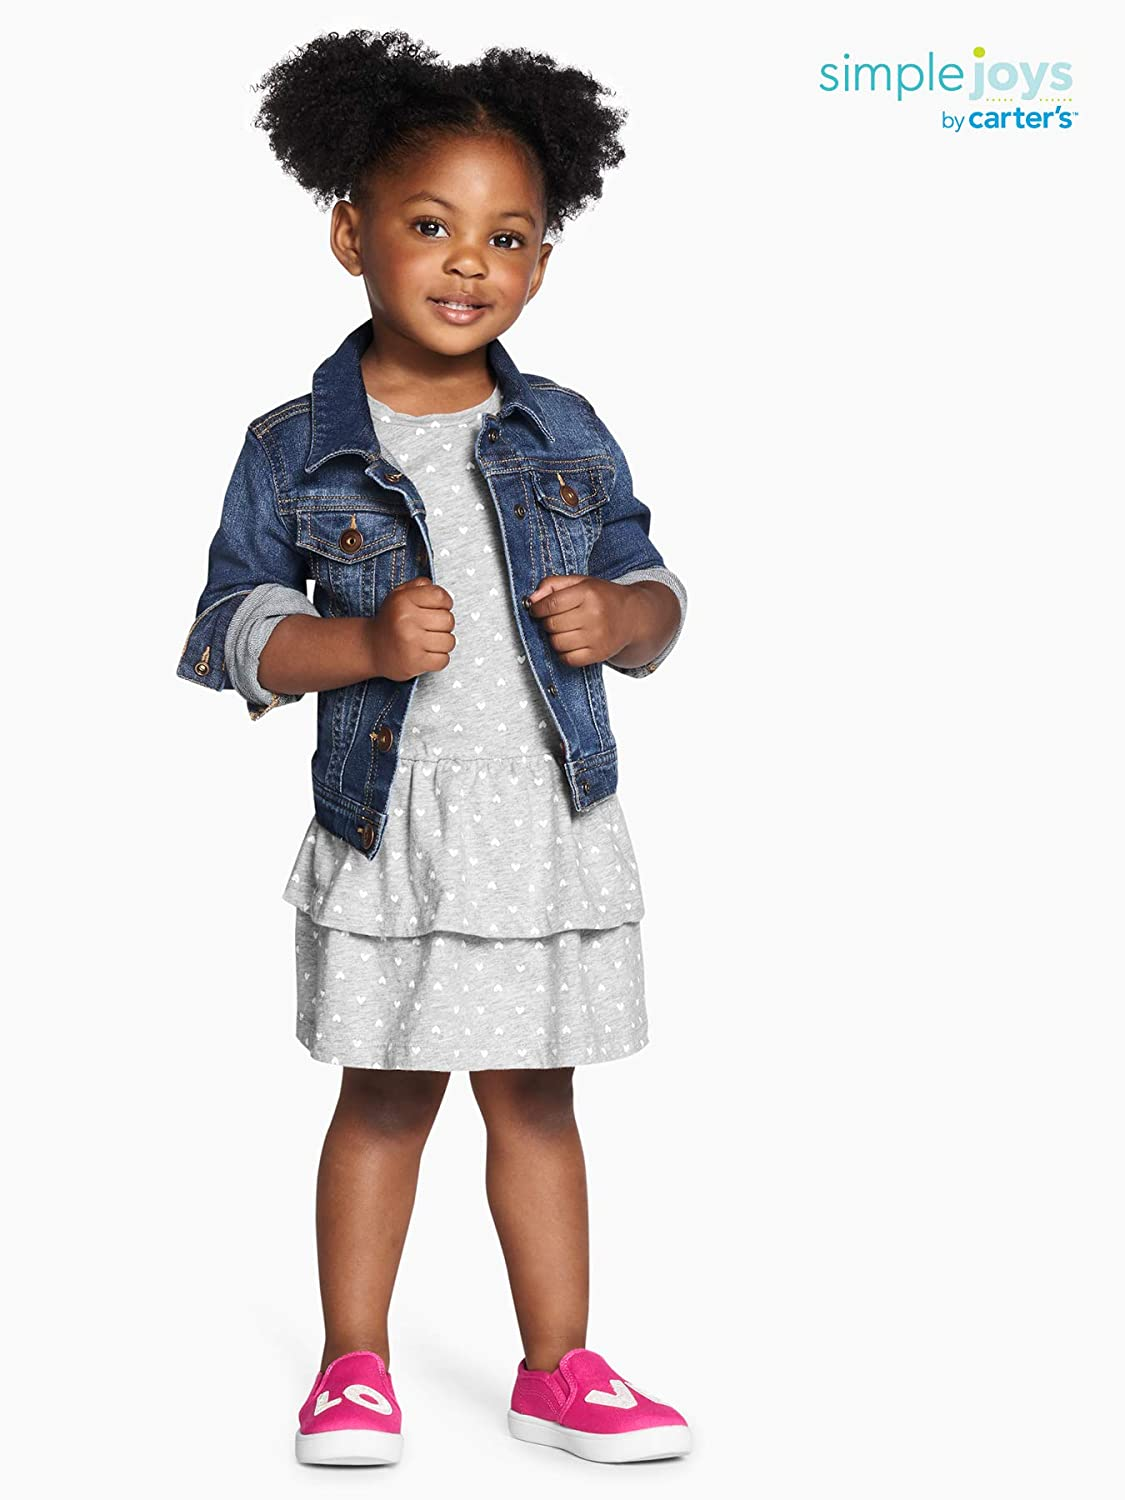 Simple Joys by Carters Baby and Toddler Girls Denim Jacket